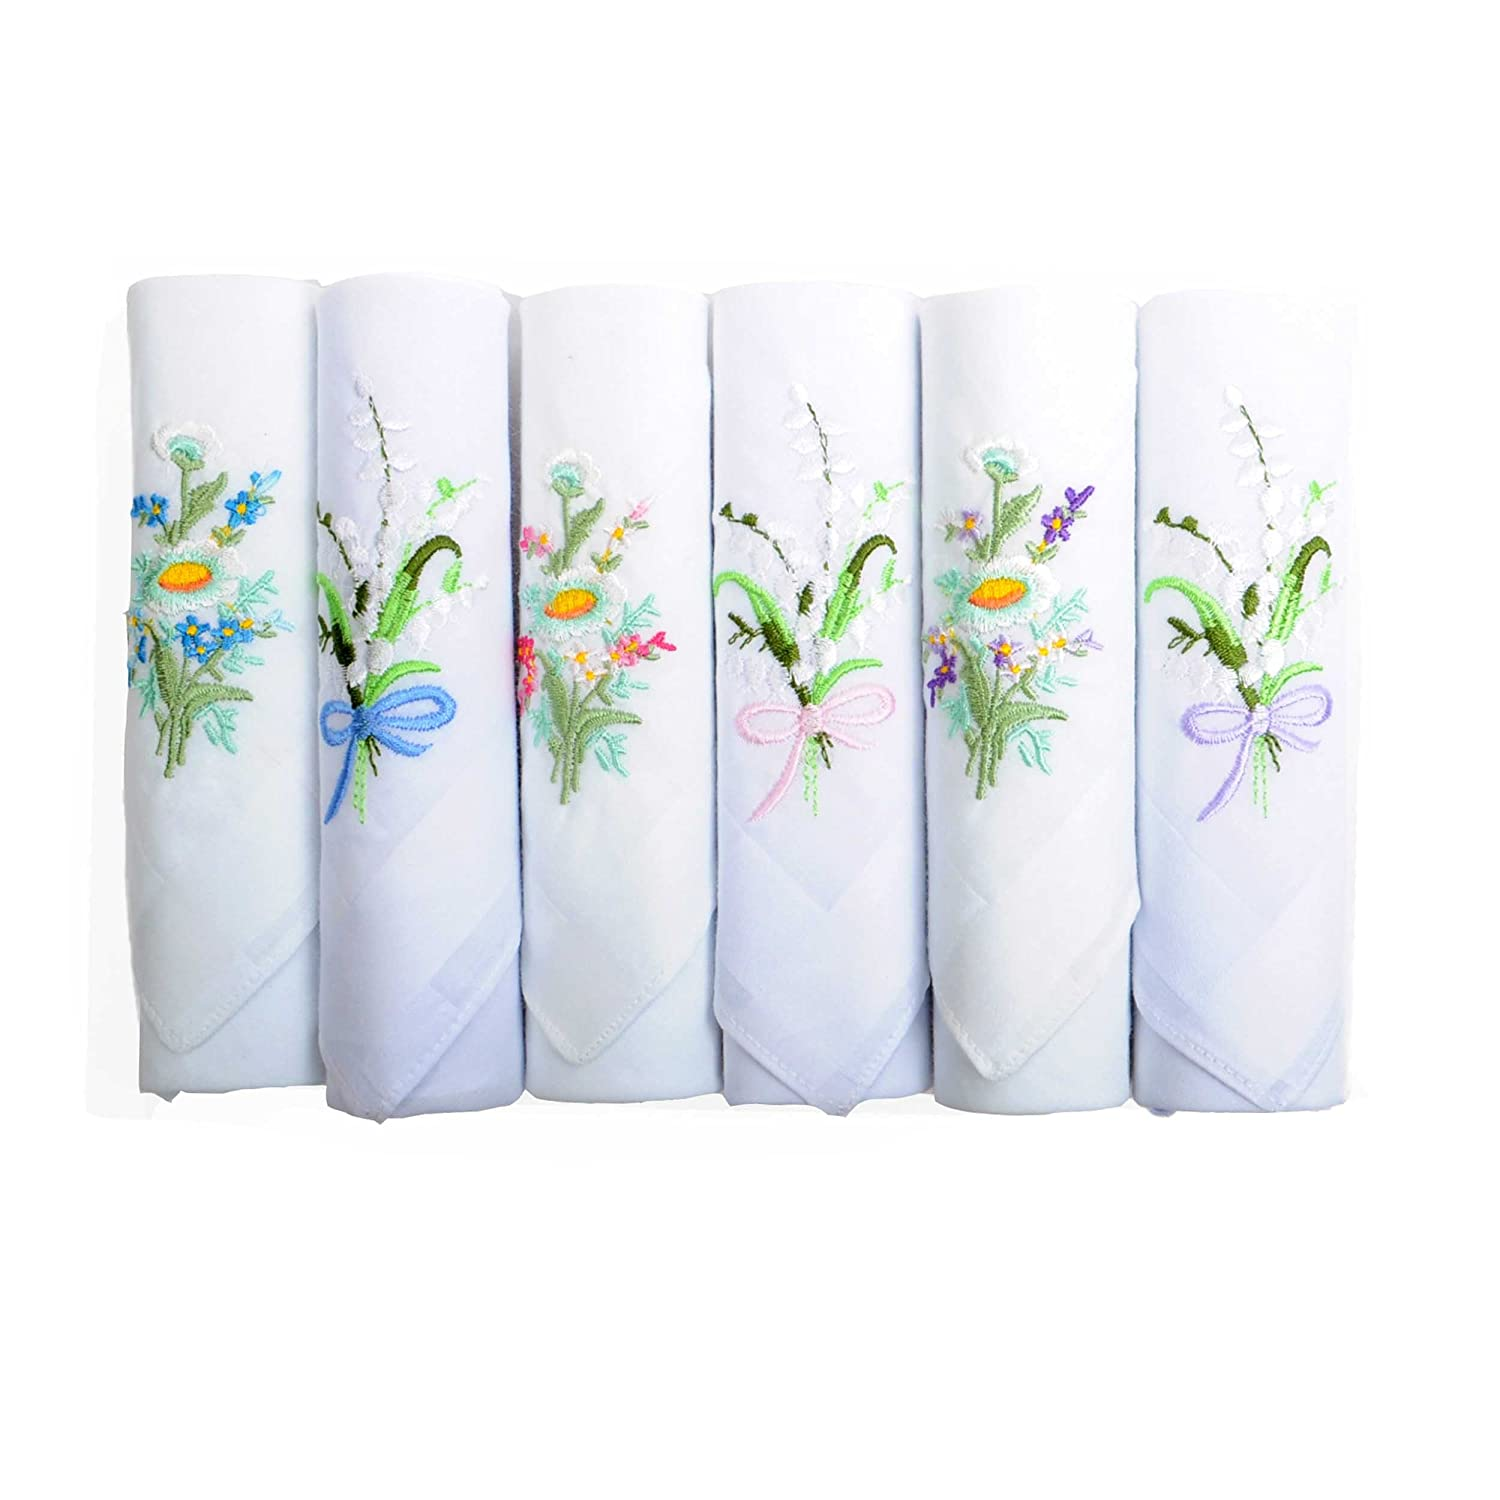 Women's Embroidered 100% Cotton Handkerchief 6-pc Gift set